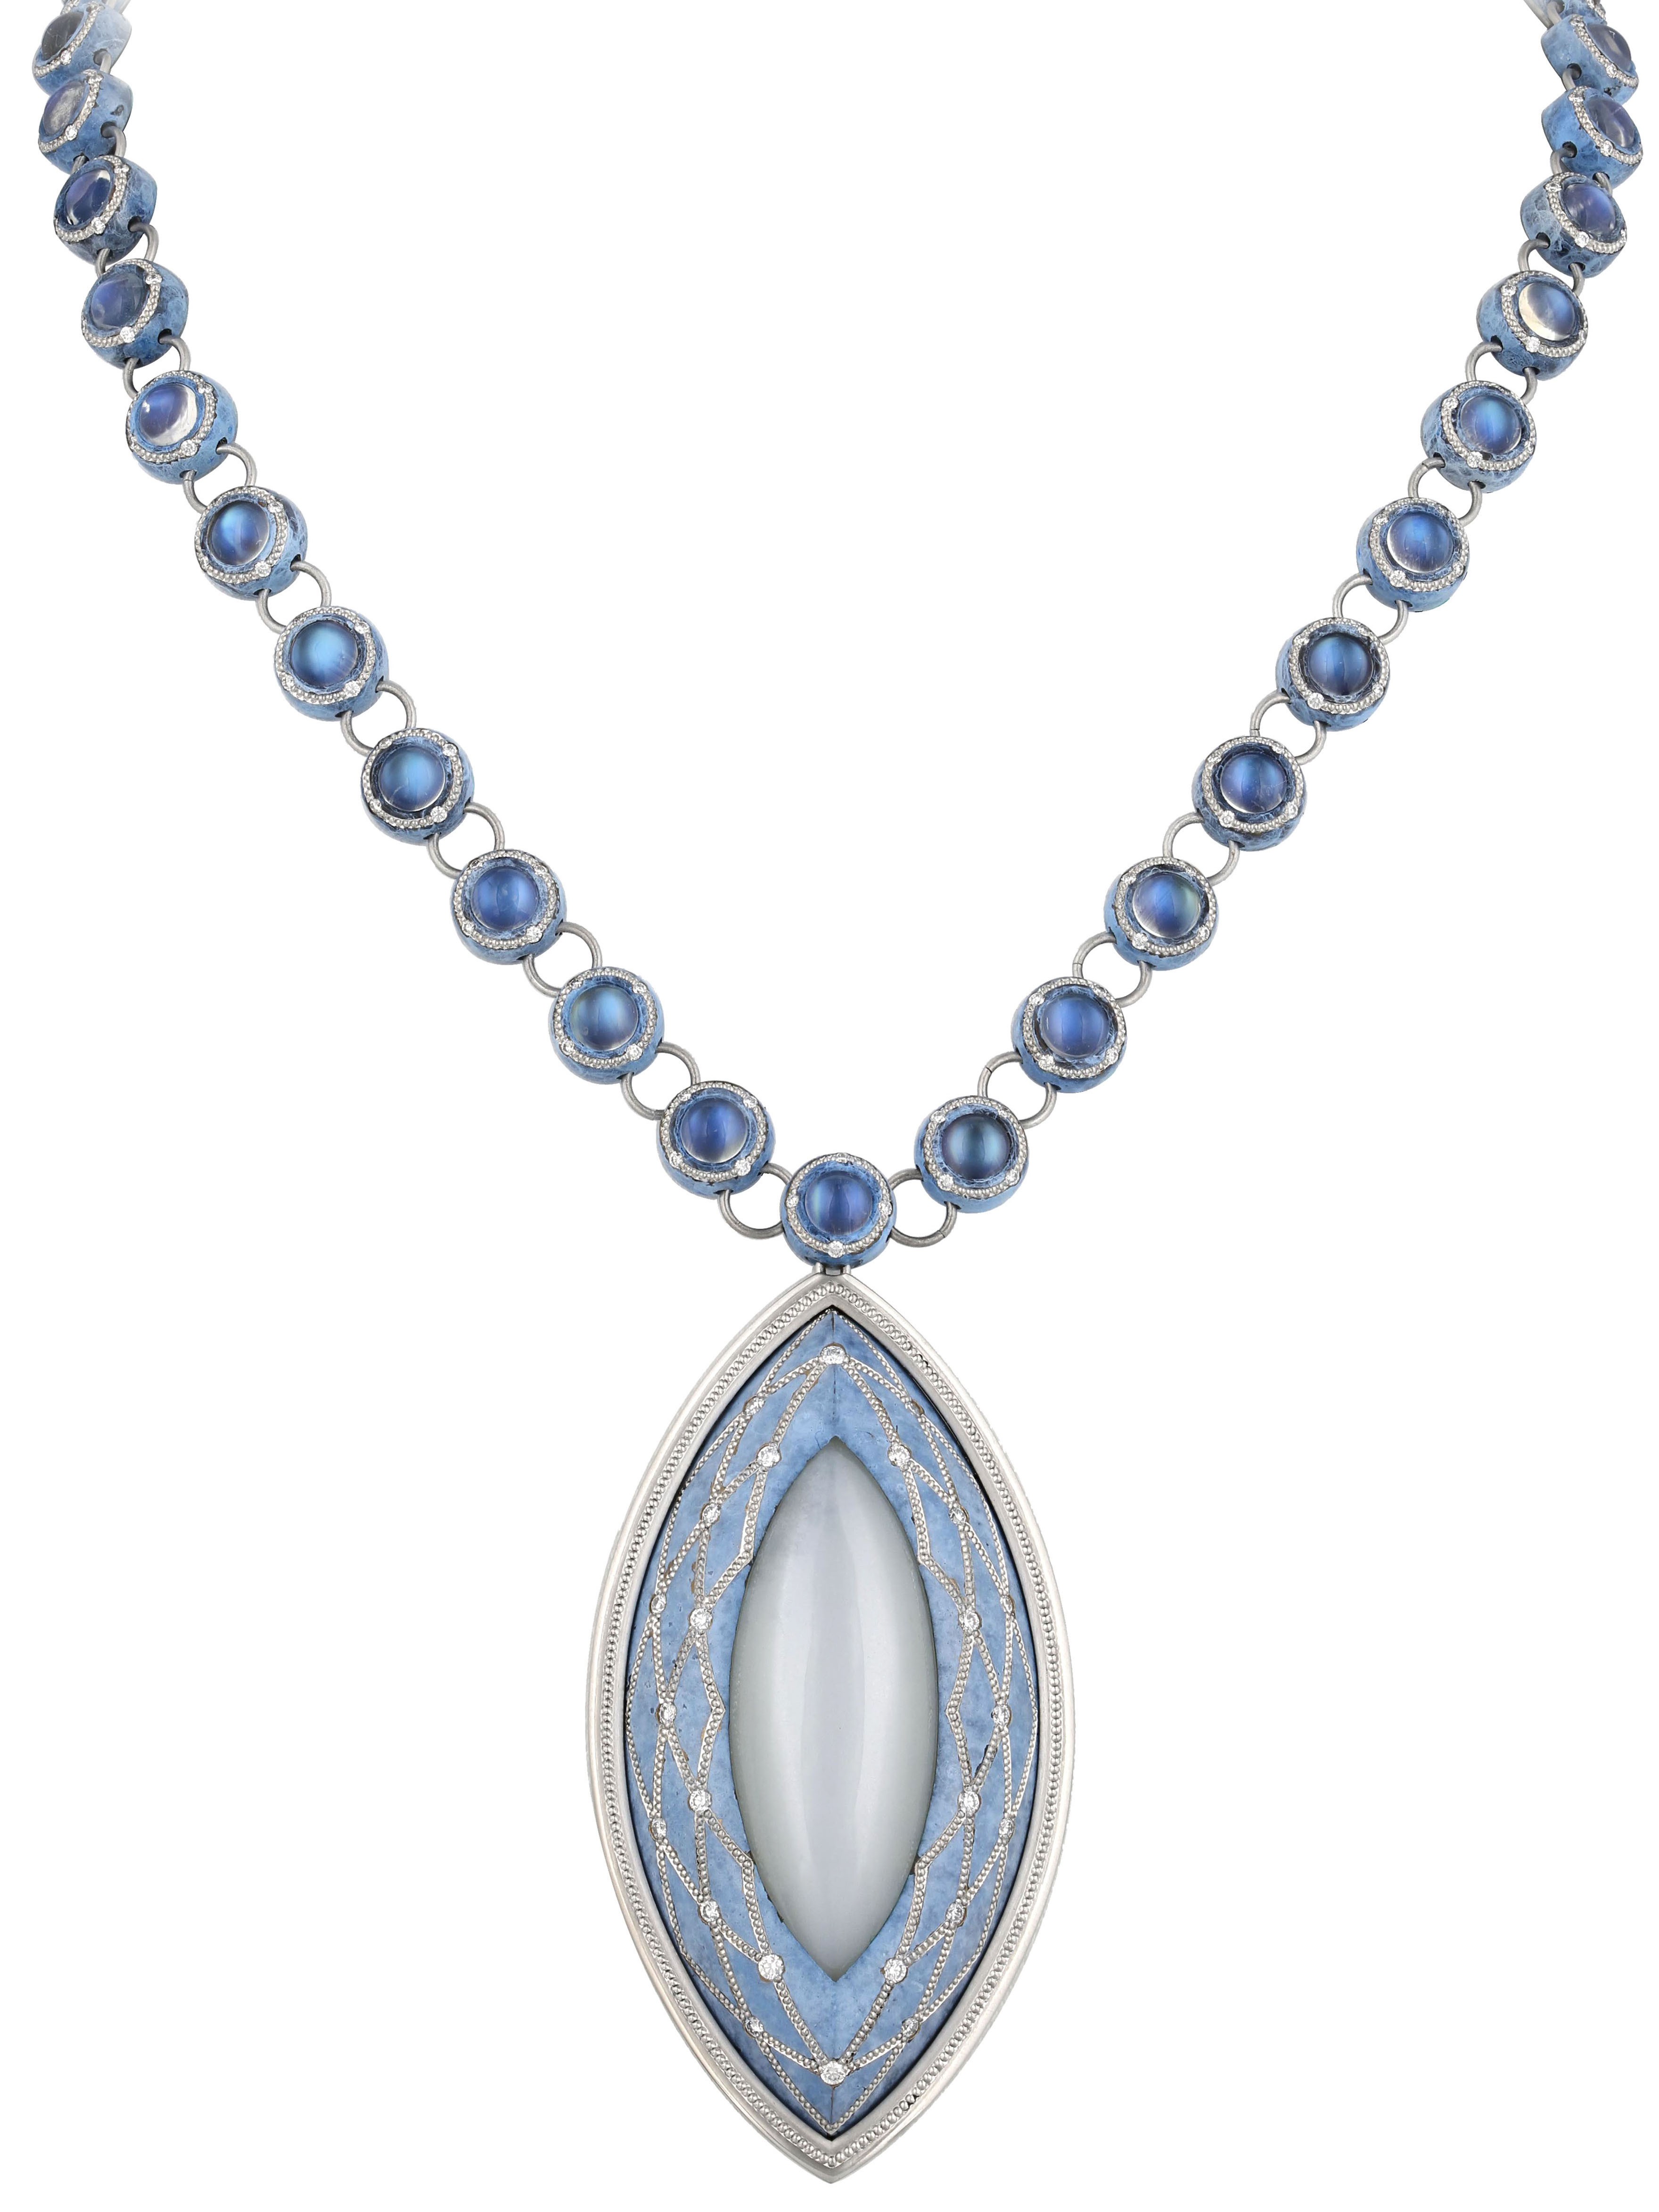 Iris pendant with marquise-cut cat's eye moonstone